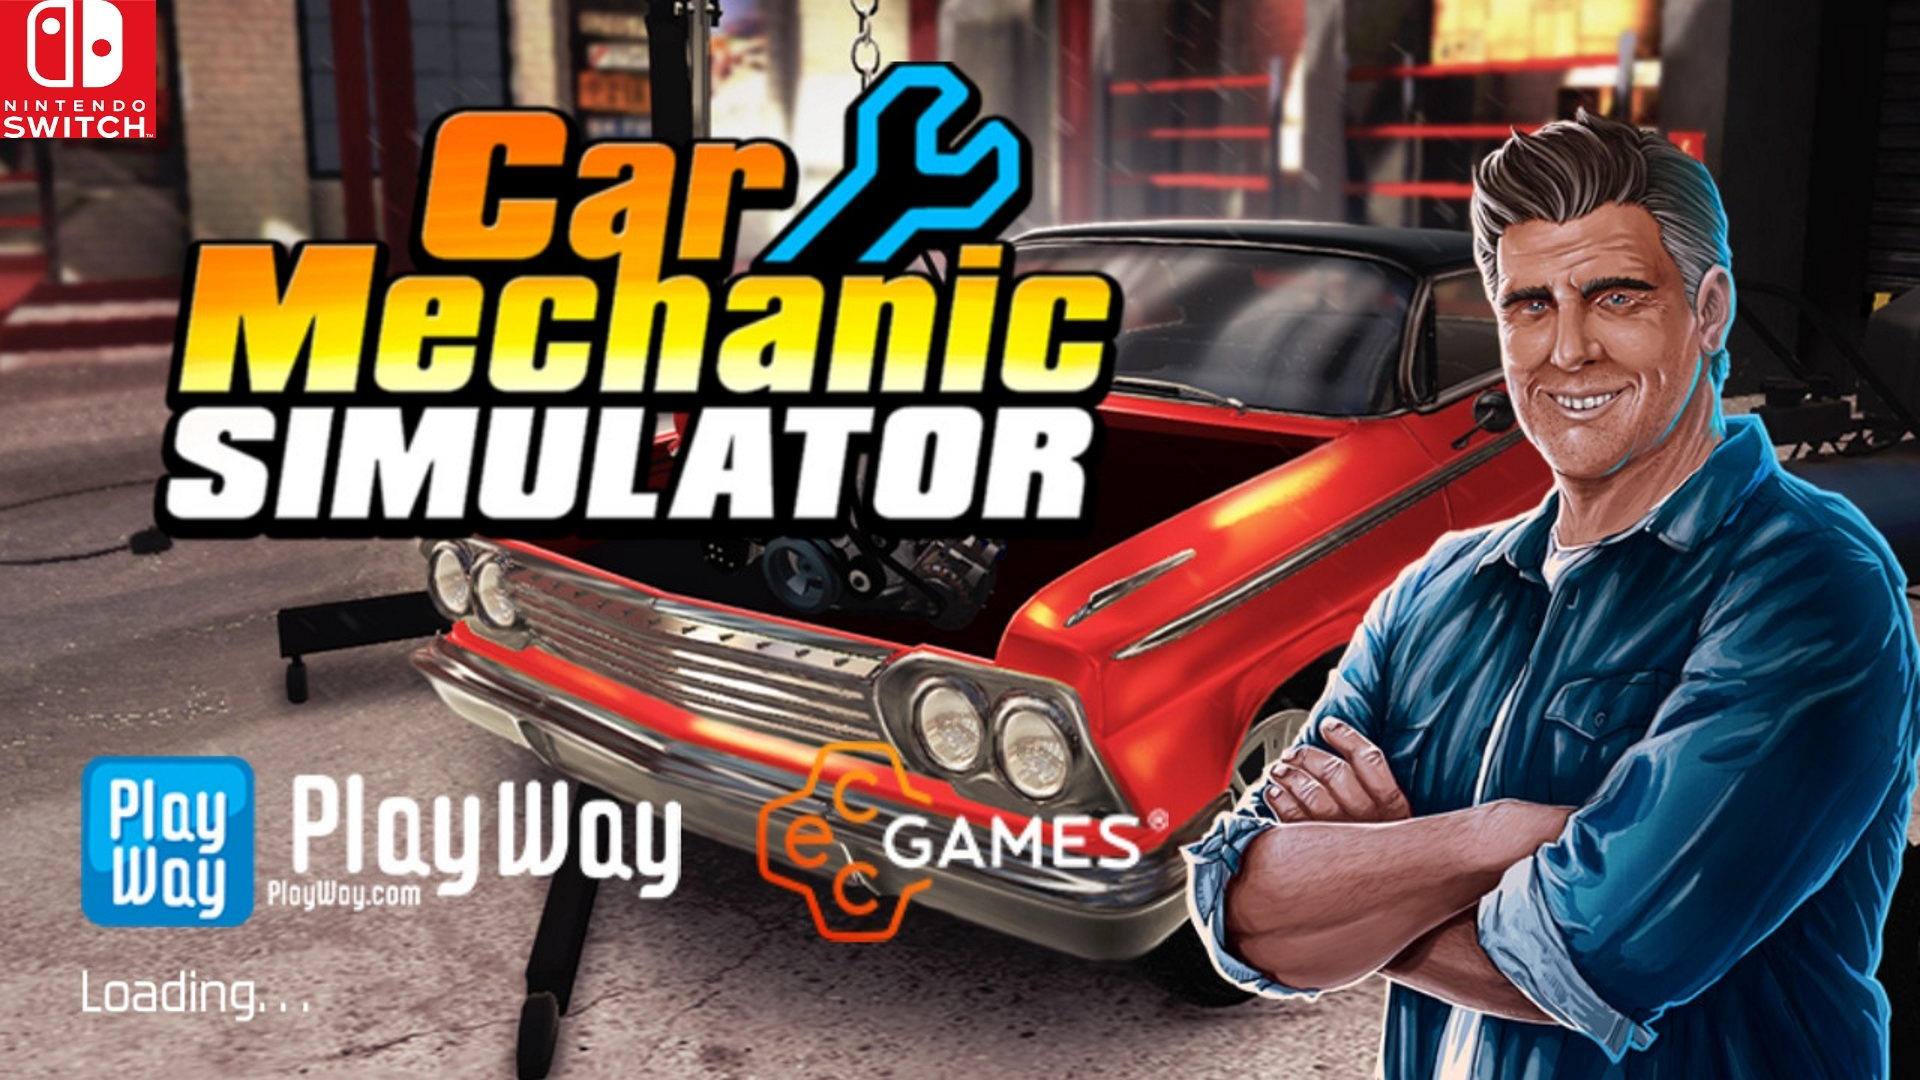 Car Mechanic Simulator makes its debut on Nintendo Switch